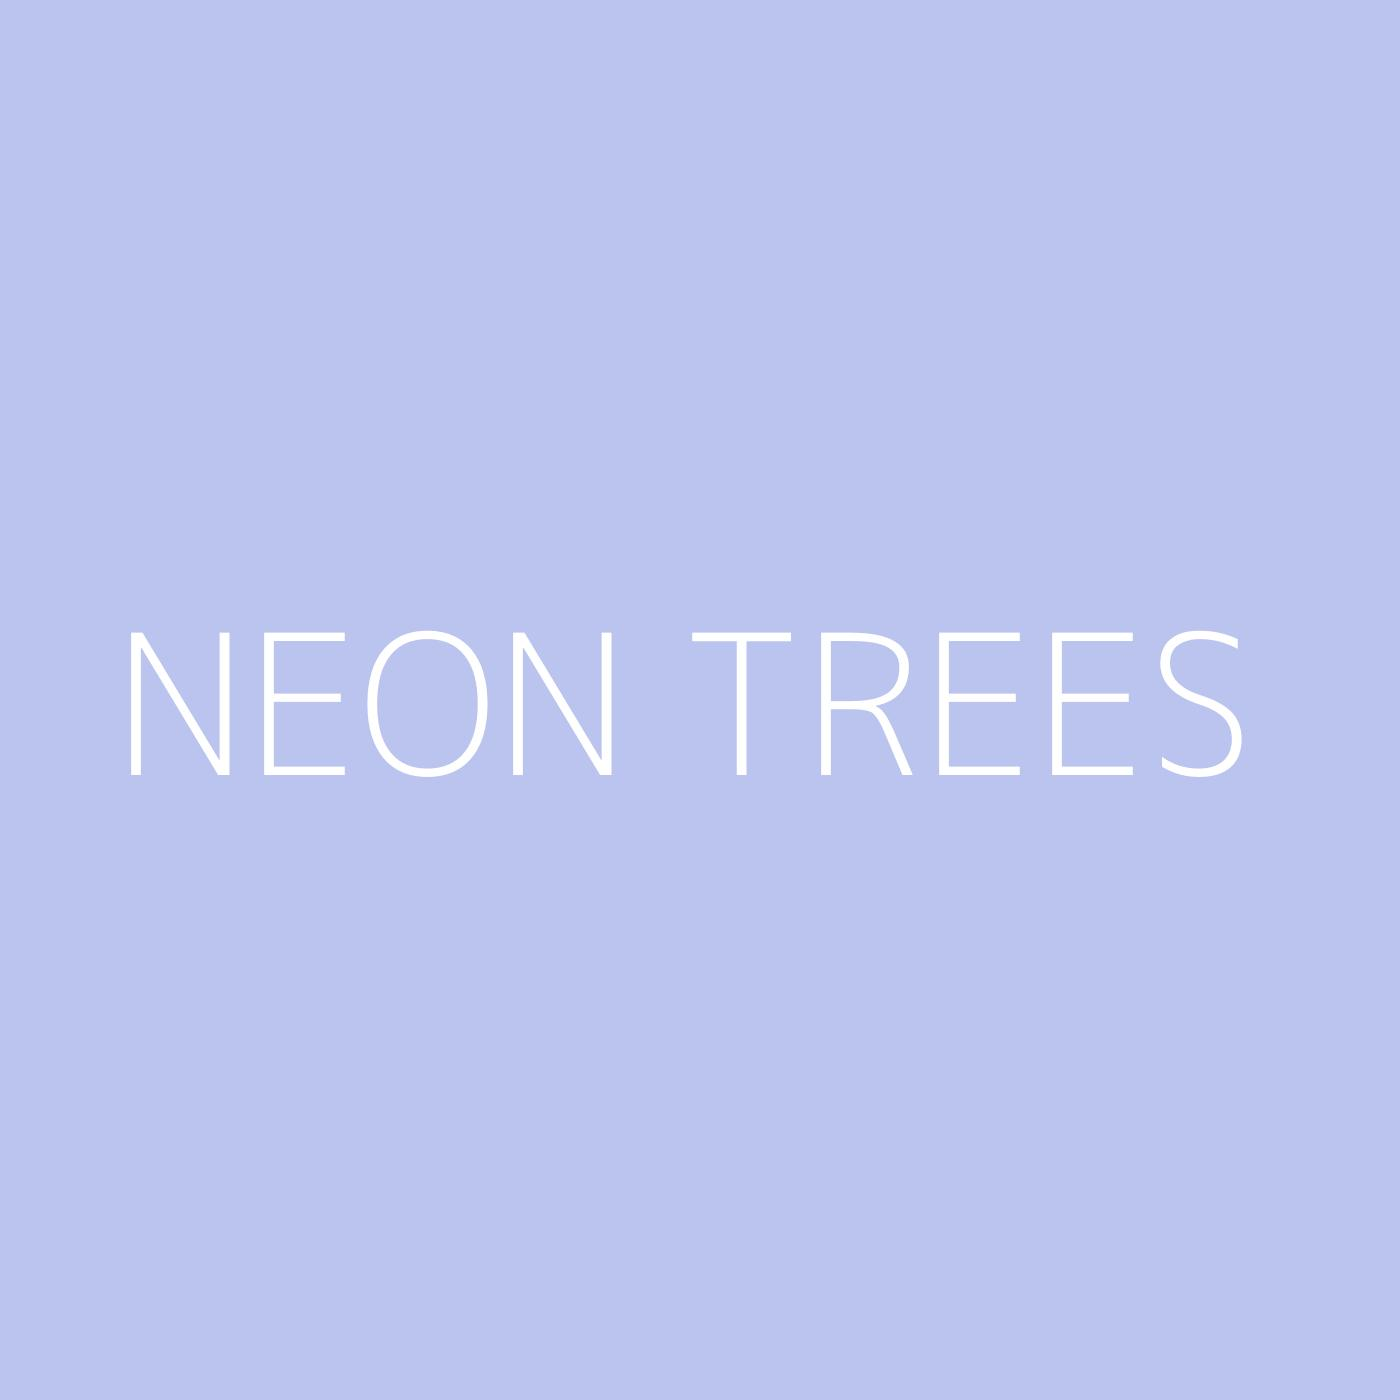 Neon Trees Playlist Artwork